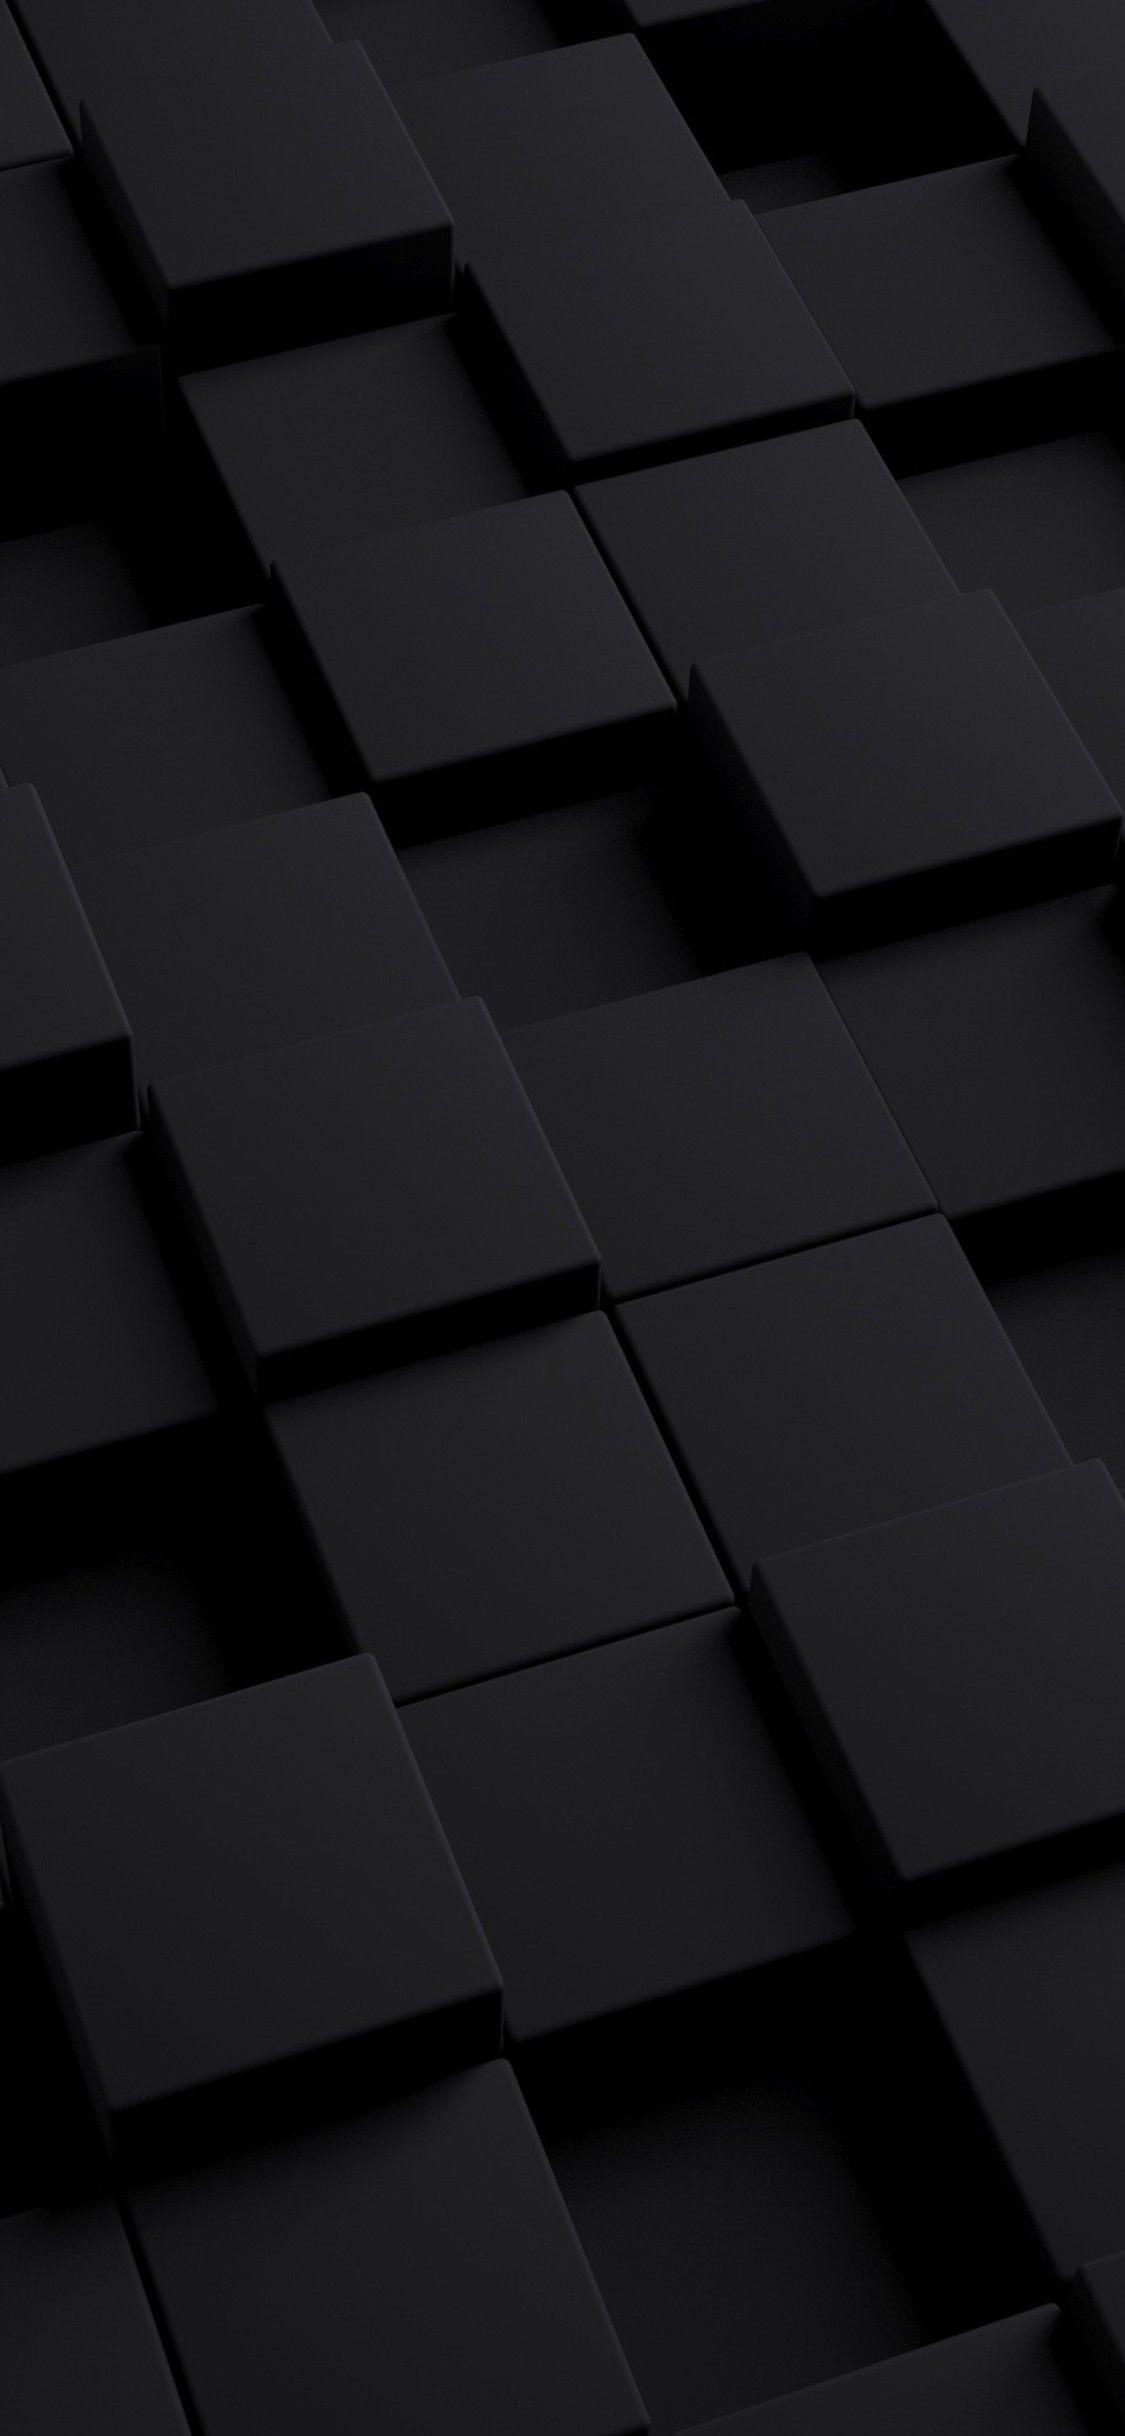 Black 3D Cubes IPhone Wallpapers Wallpaper Cave